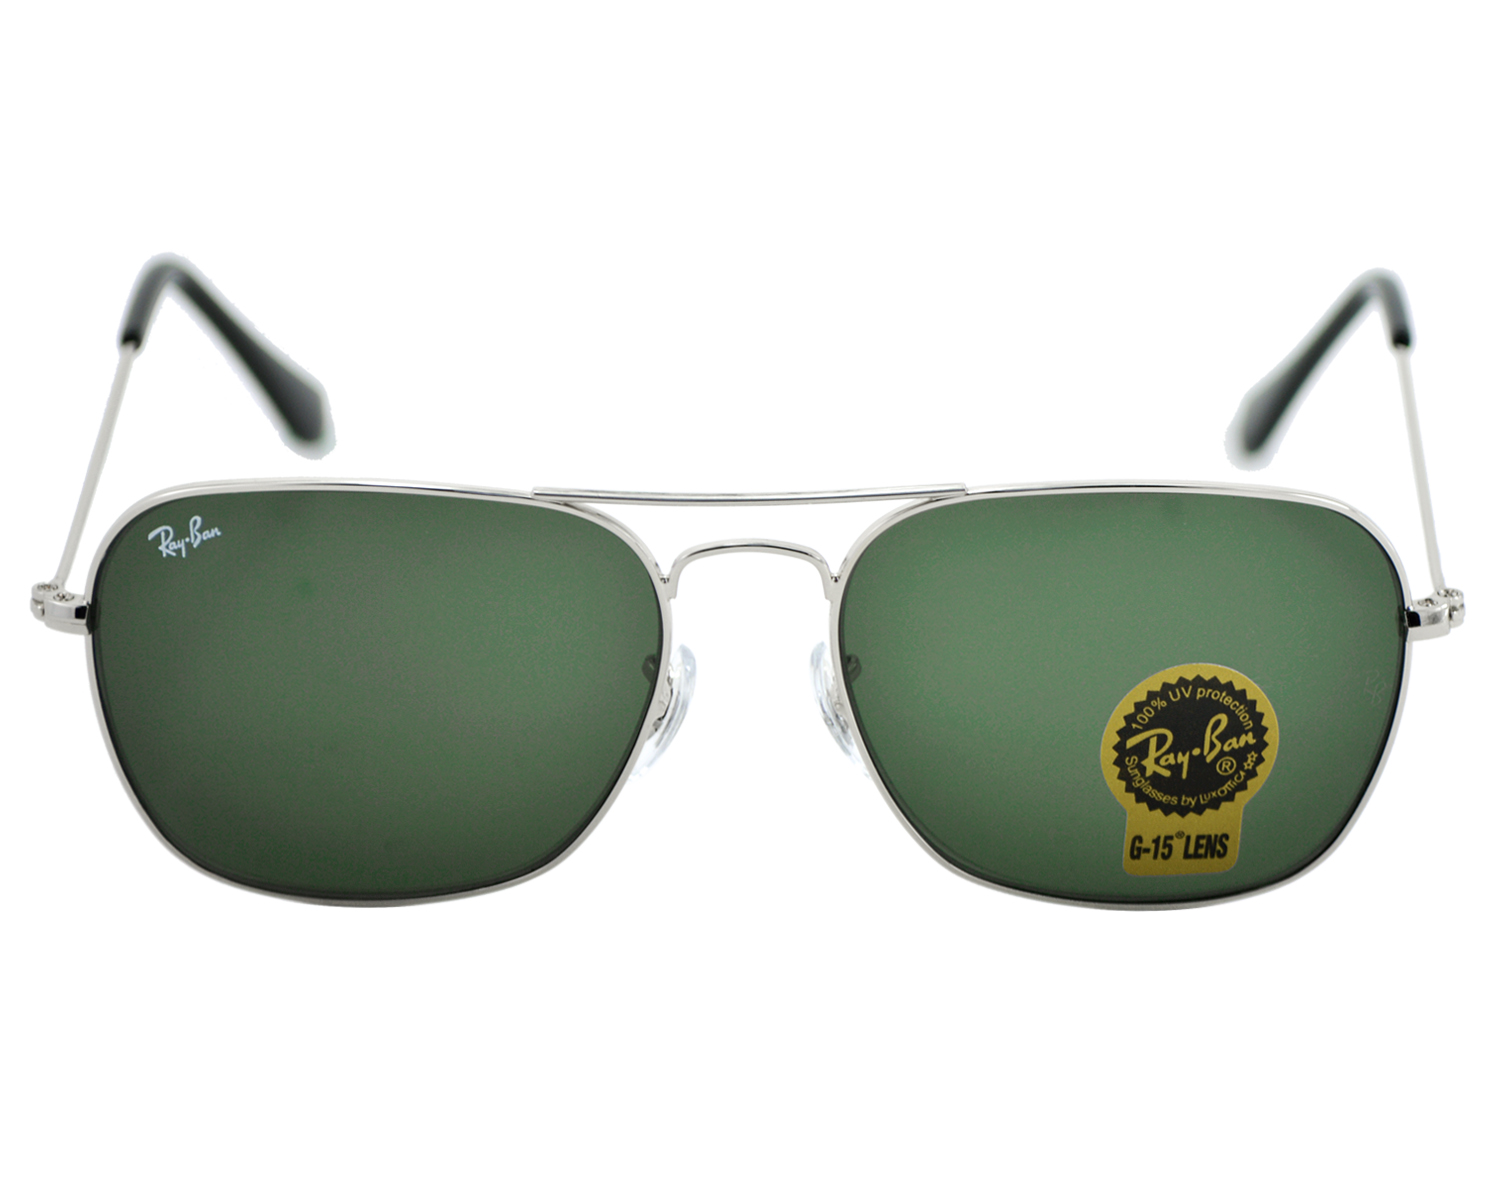 ec1c6acd086 ... bronze red aviator 58mm sunglasses ad015 fdda9  france rayban rb3136  caravan 003 silver frame green classic g 15 lenses unisex sunglasses 58mm  9e316